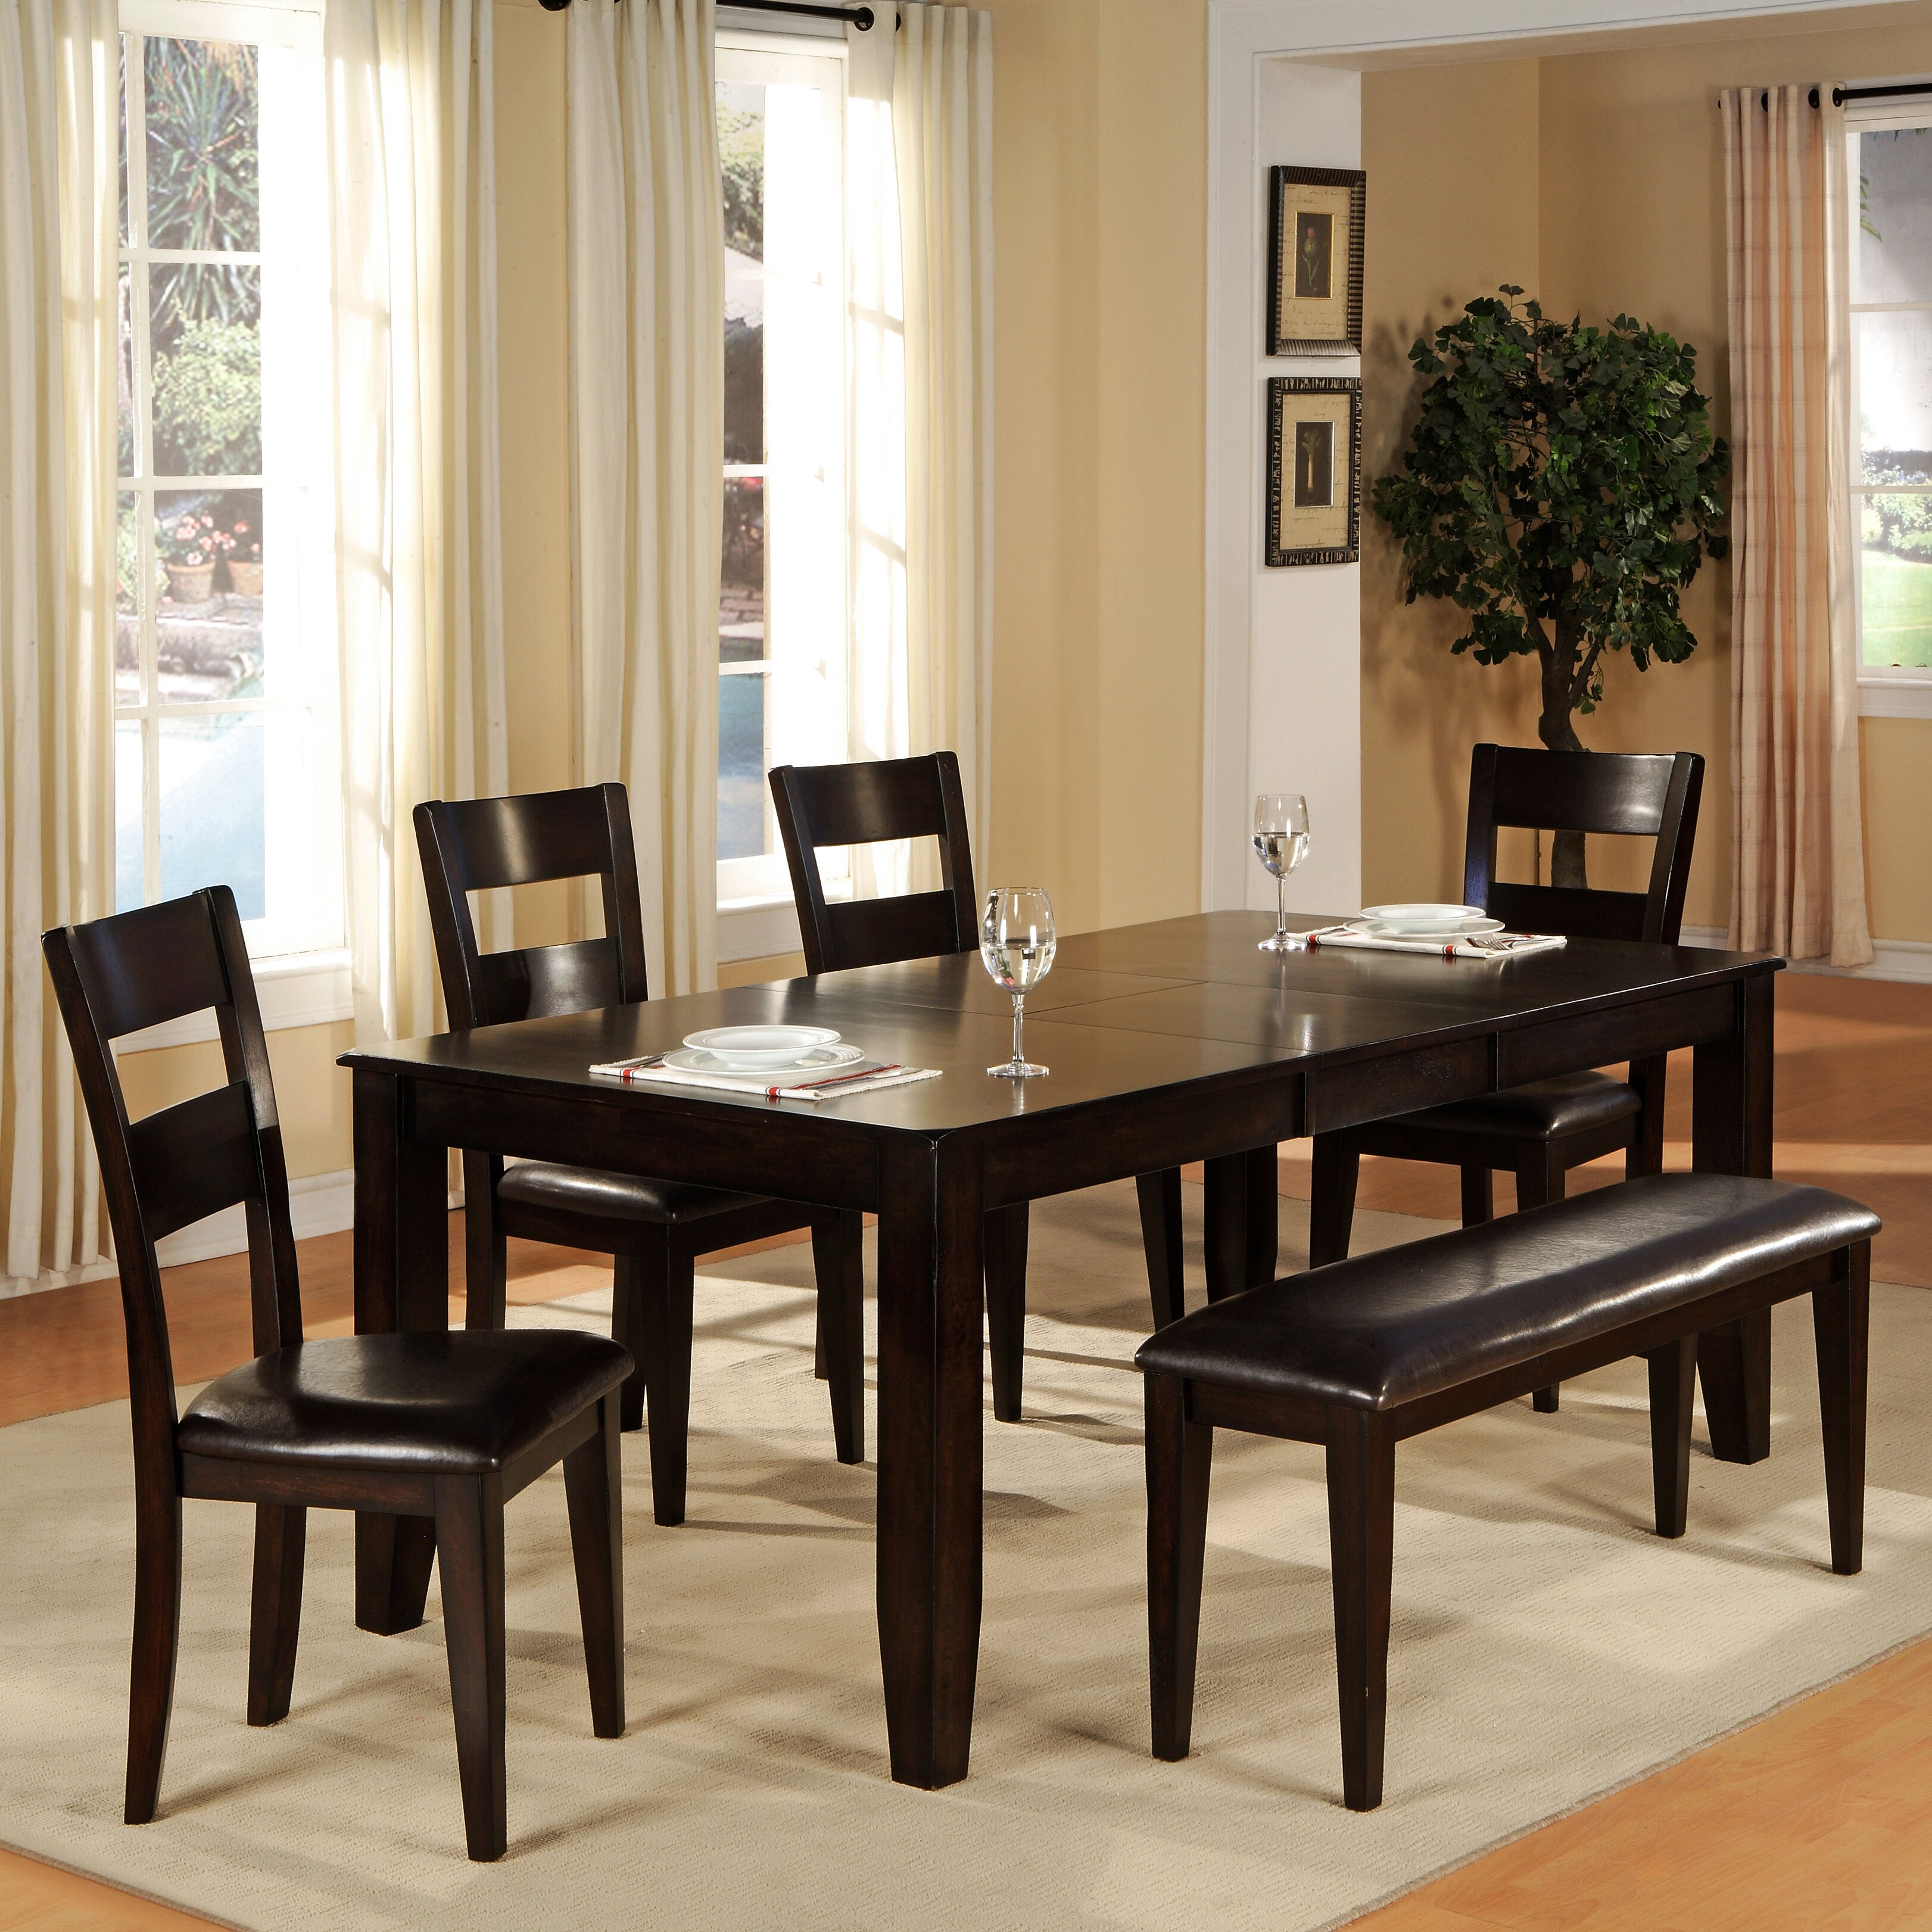 Wildon Home ® Extendable Dining Table & Reviews